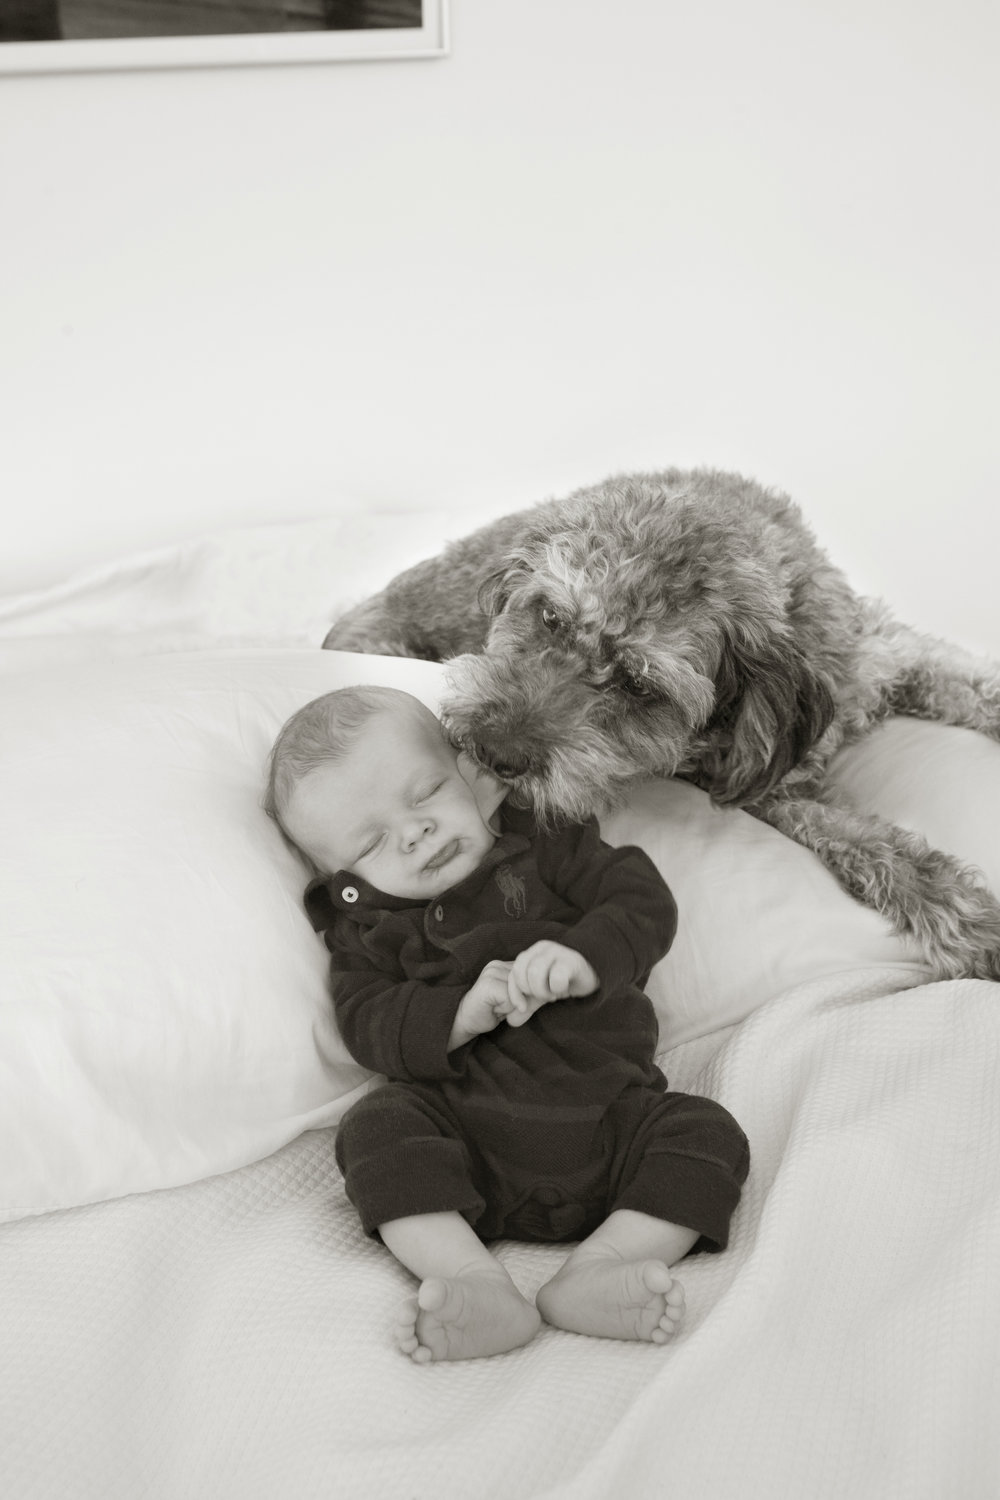 Precious newborn resting in loving company of man's best friend. Photo by Lucille Khornak.